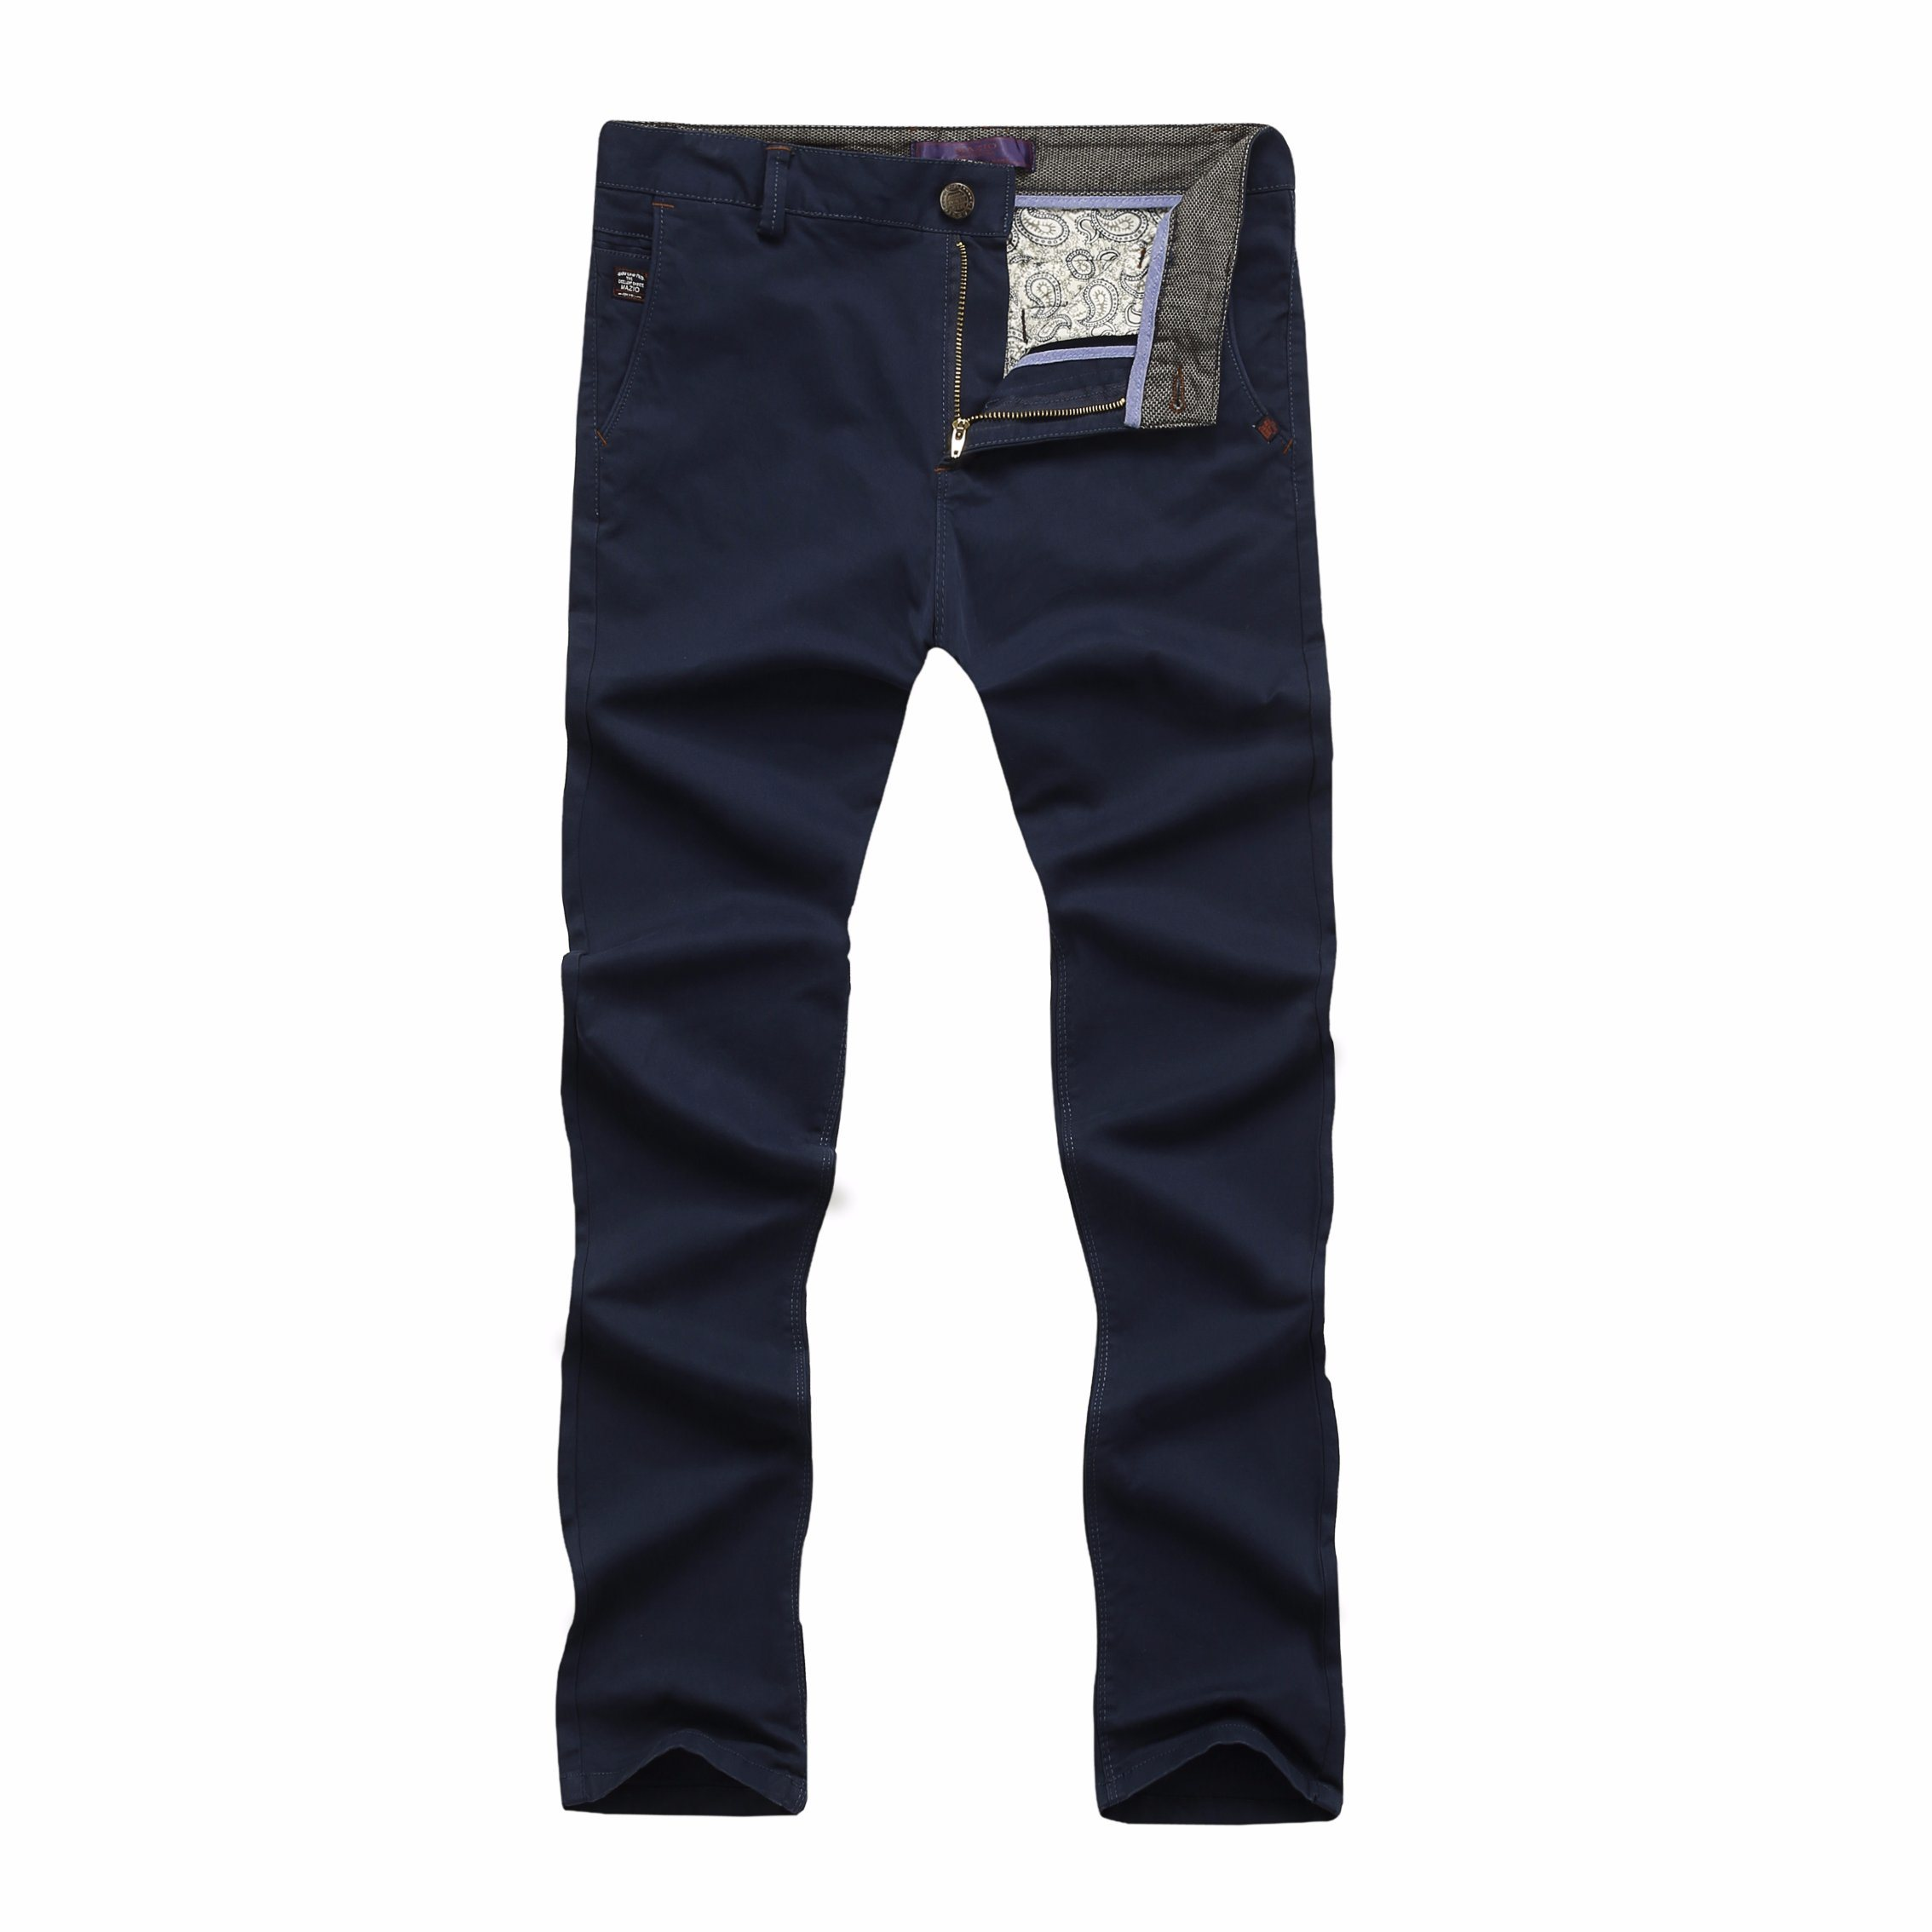 Men Cotton Fashion High Quality Casual Long Pants